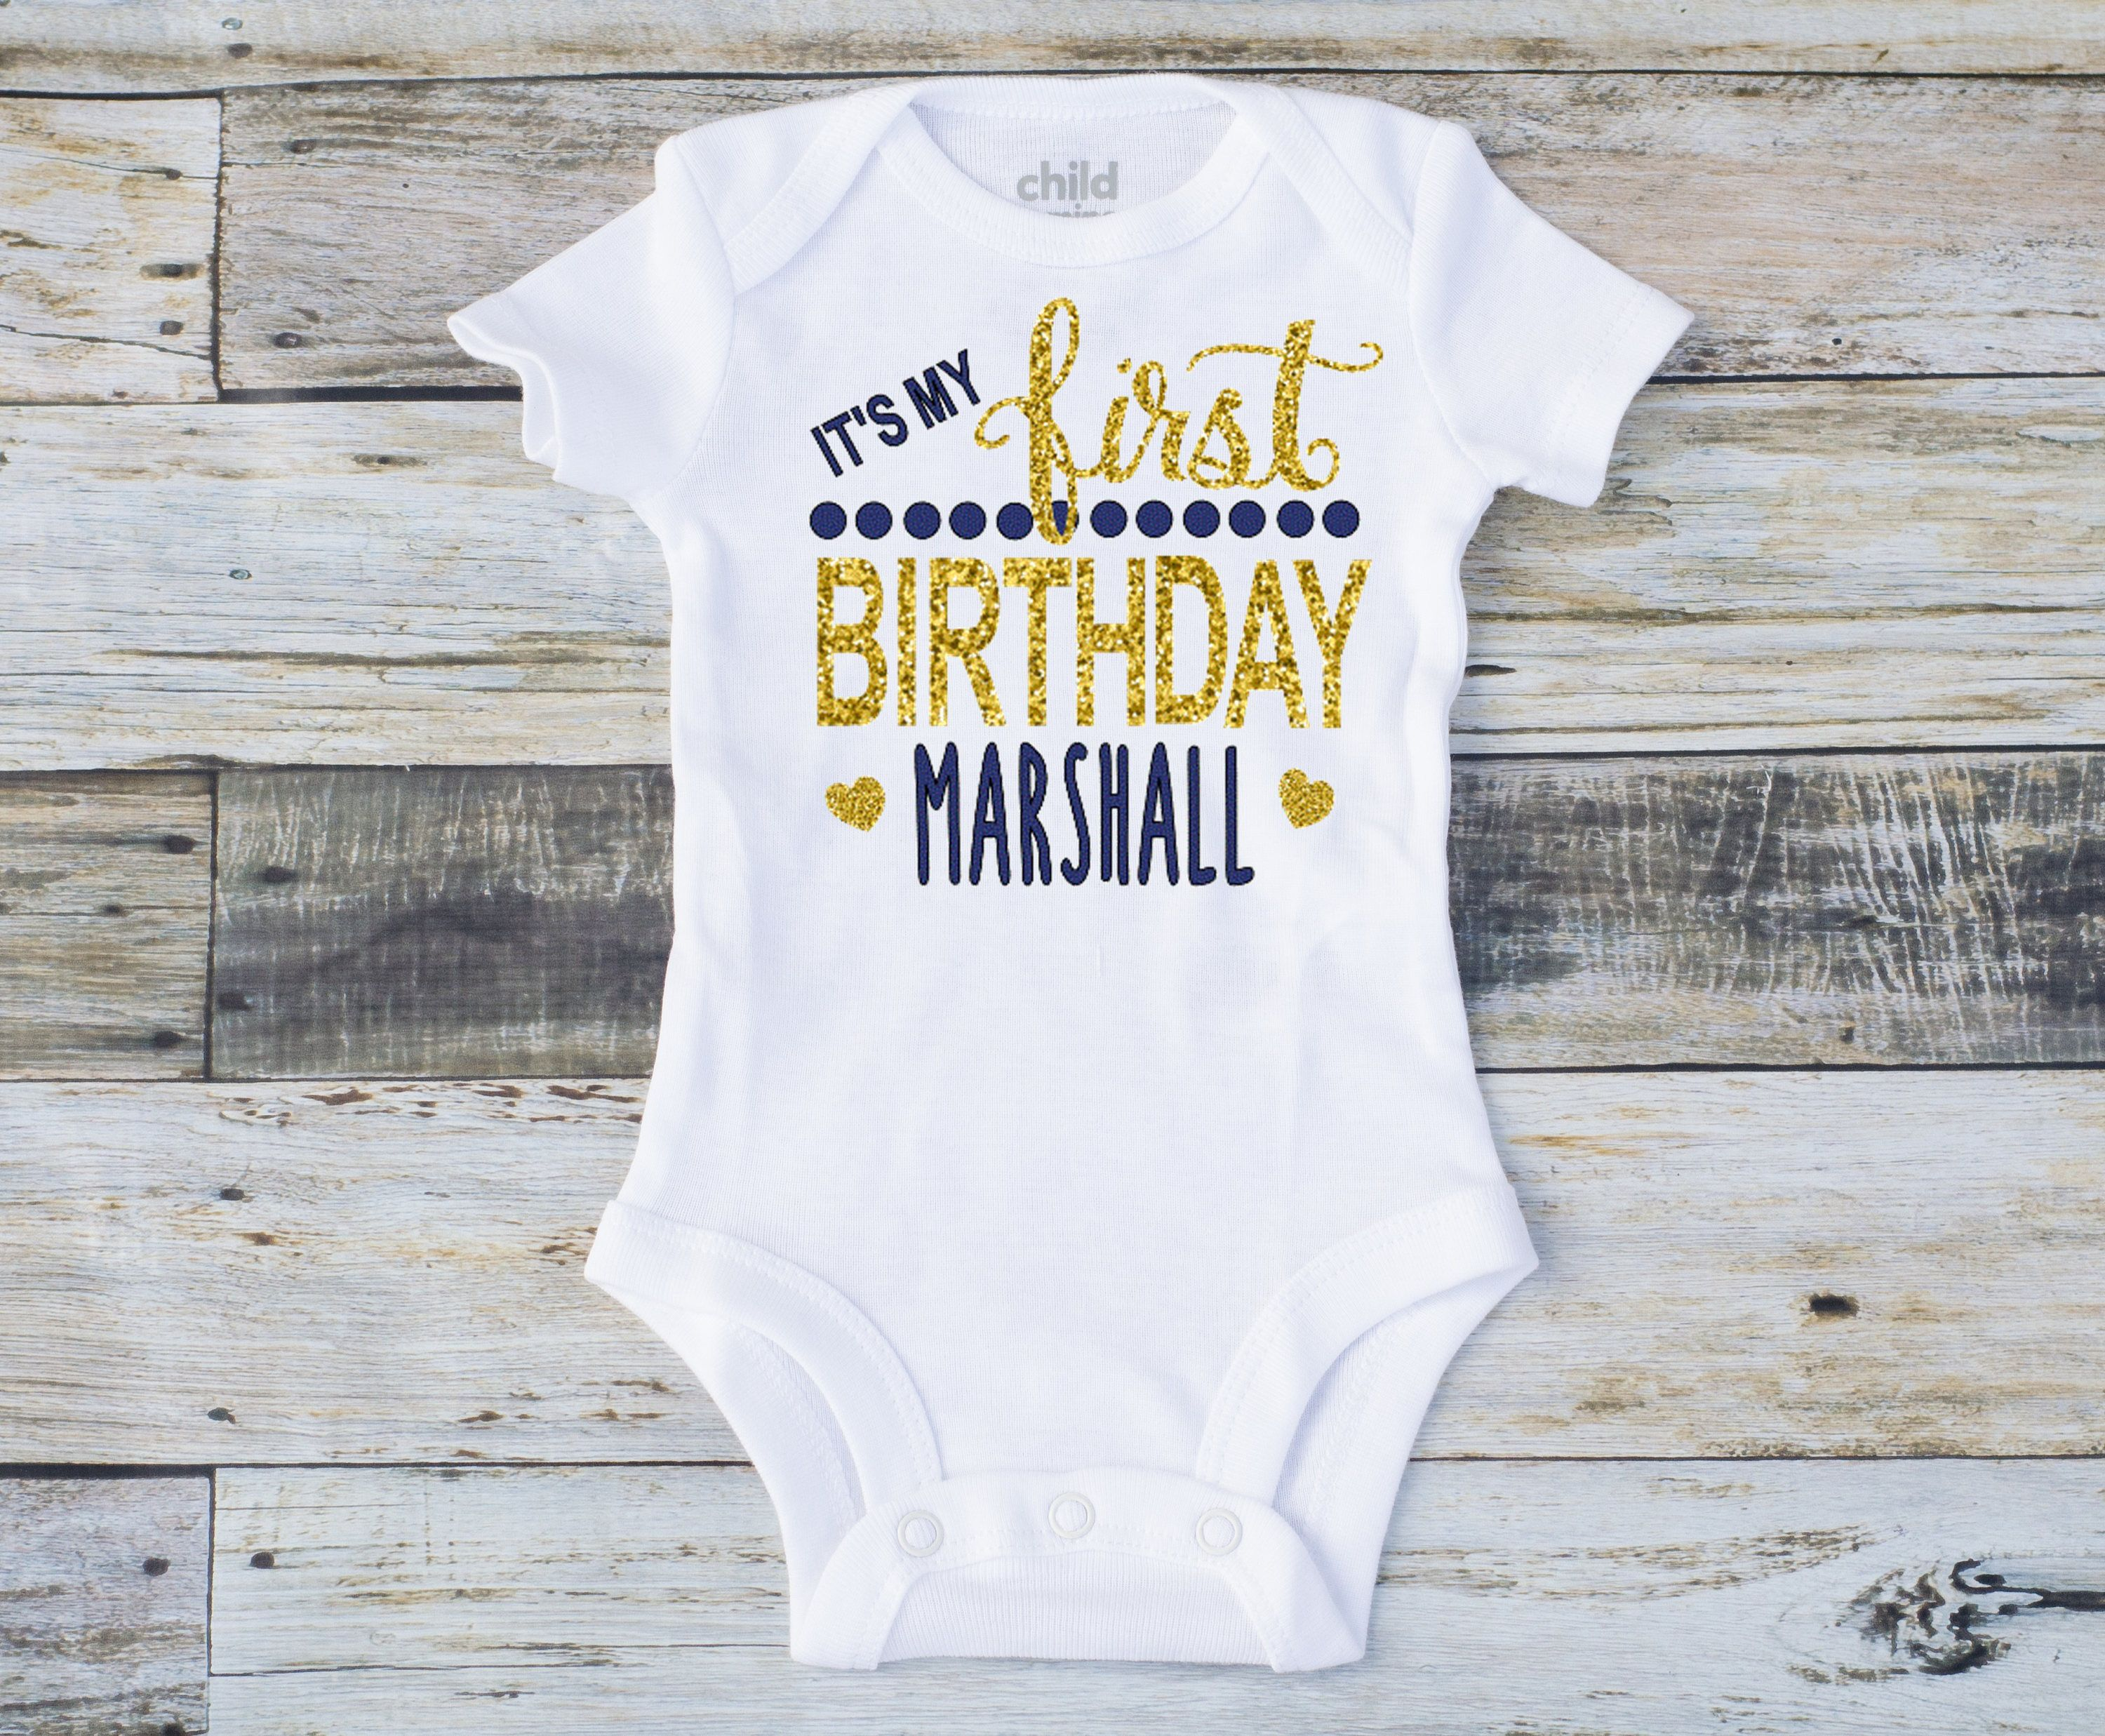 First Birthday Boy Personalized Name And Age Gold Blue Change Or Colors Baby Toddler Tee Bodysuit Top Shirt T Onesie By GumDropDarling On Etsy